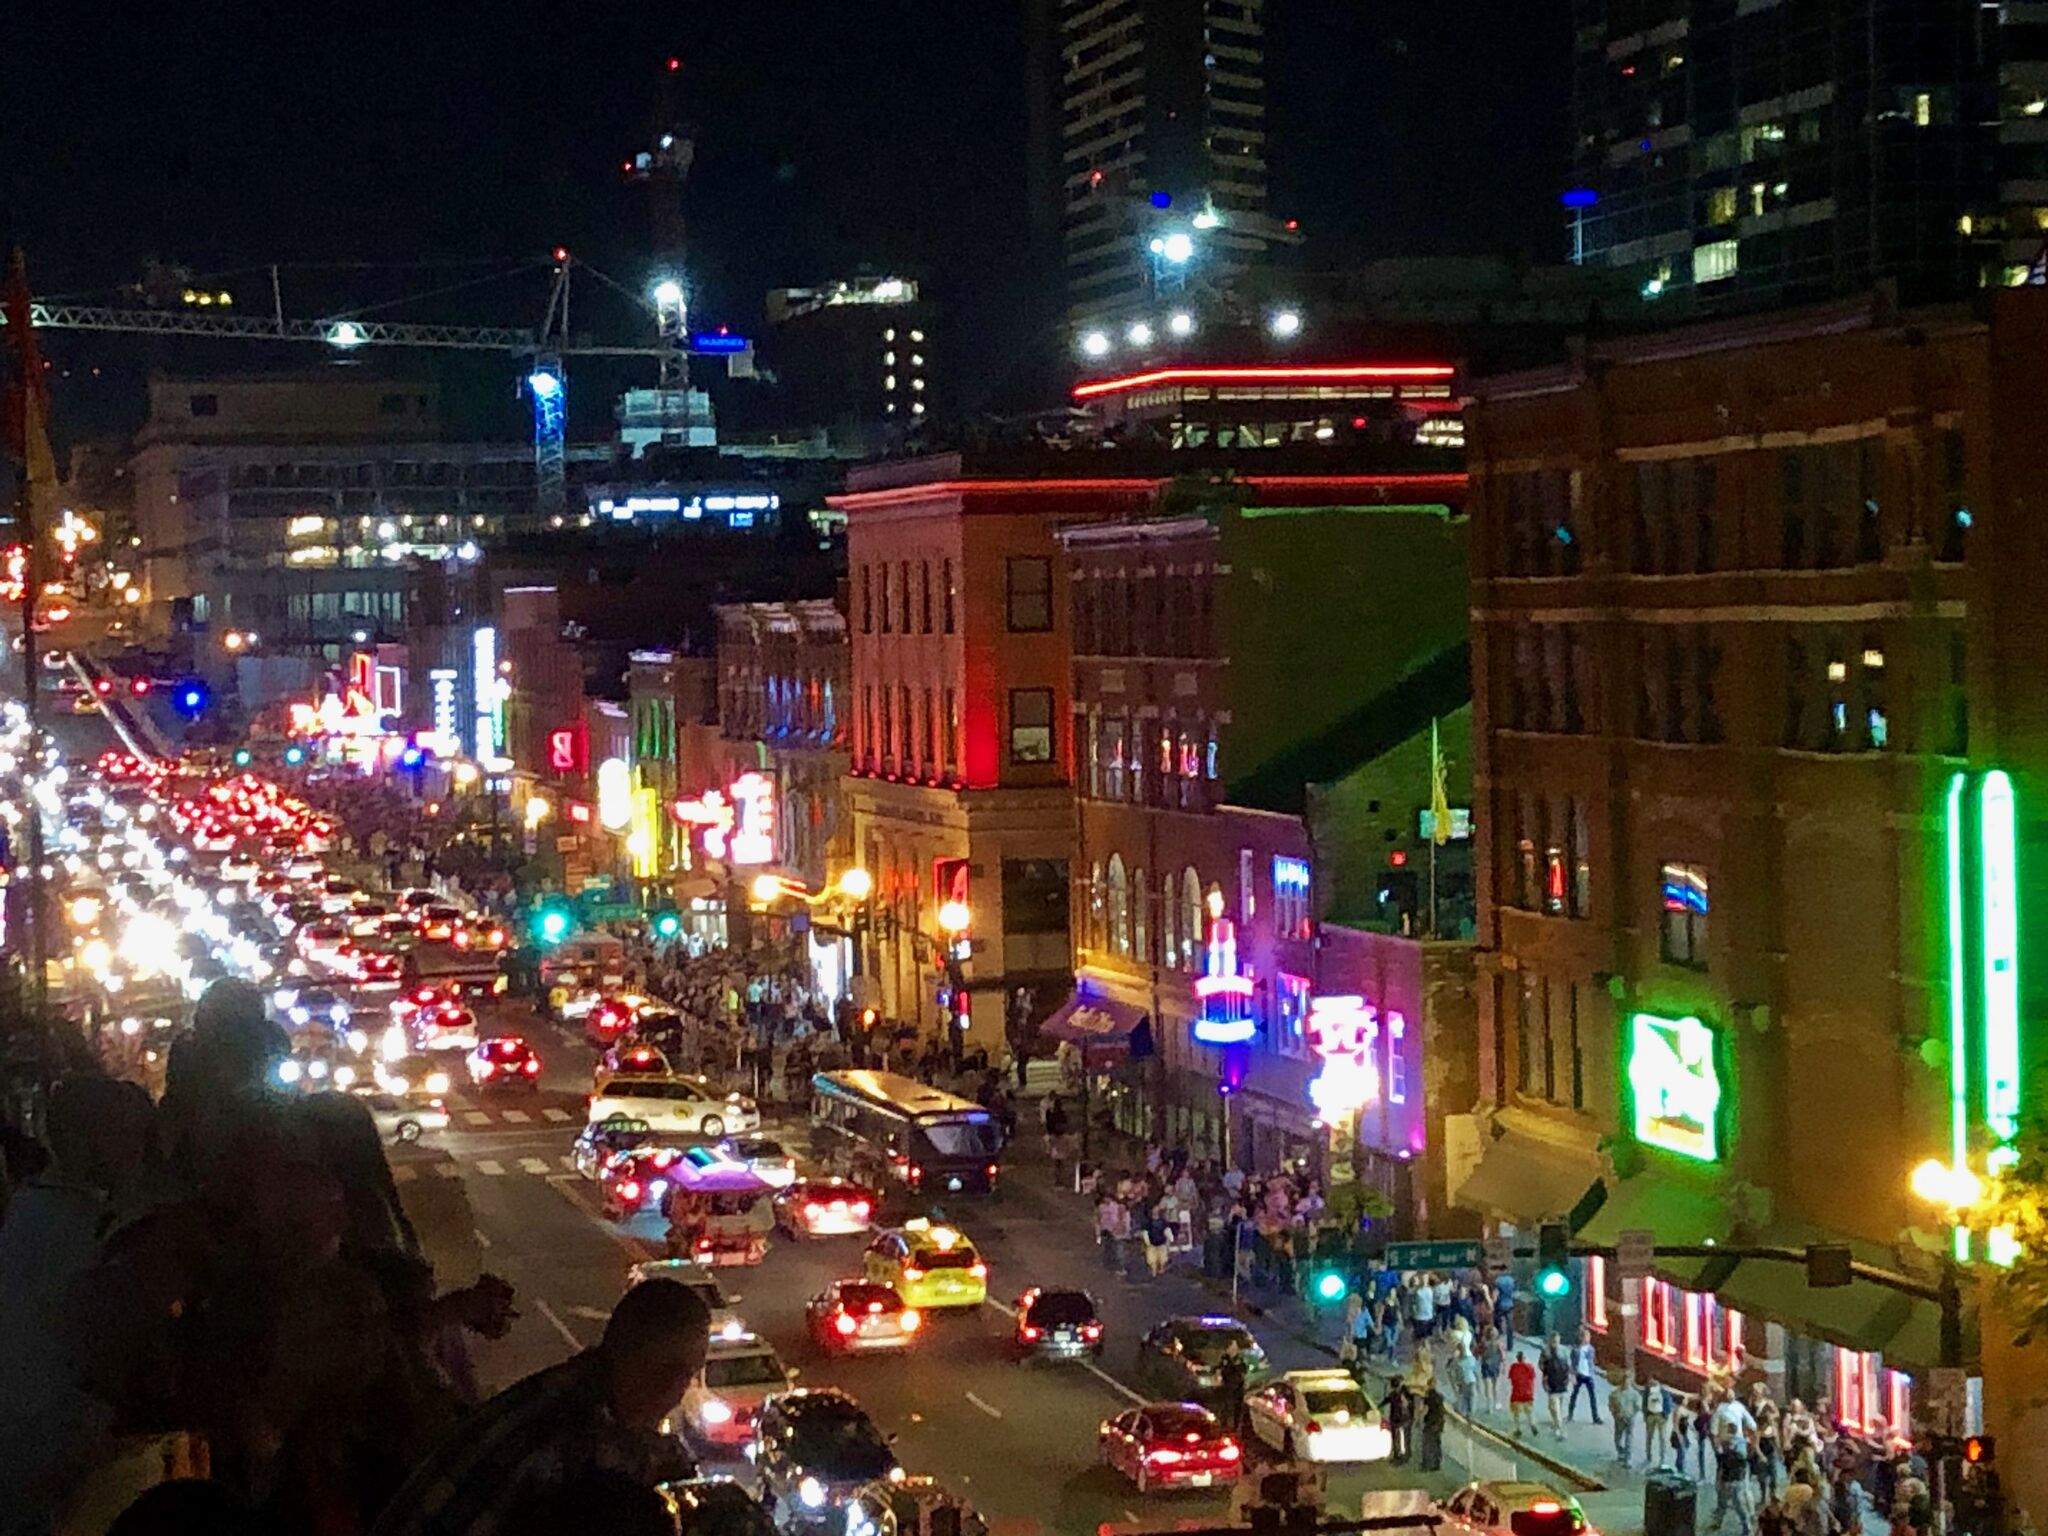 Hemp enthusiasts walk the streets of downtown Nashville following the conclusion of the Southern Hemp Expo. Join us next year as the Expo will make a return to Nashville in 2019!